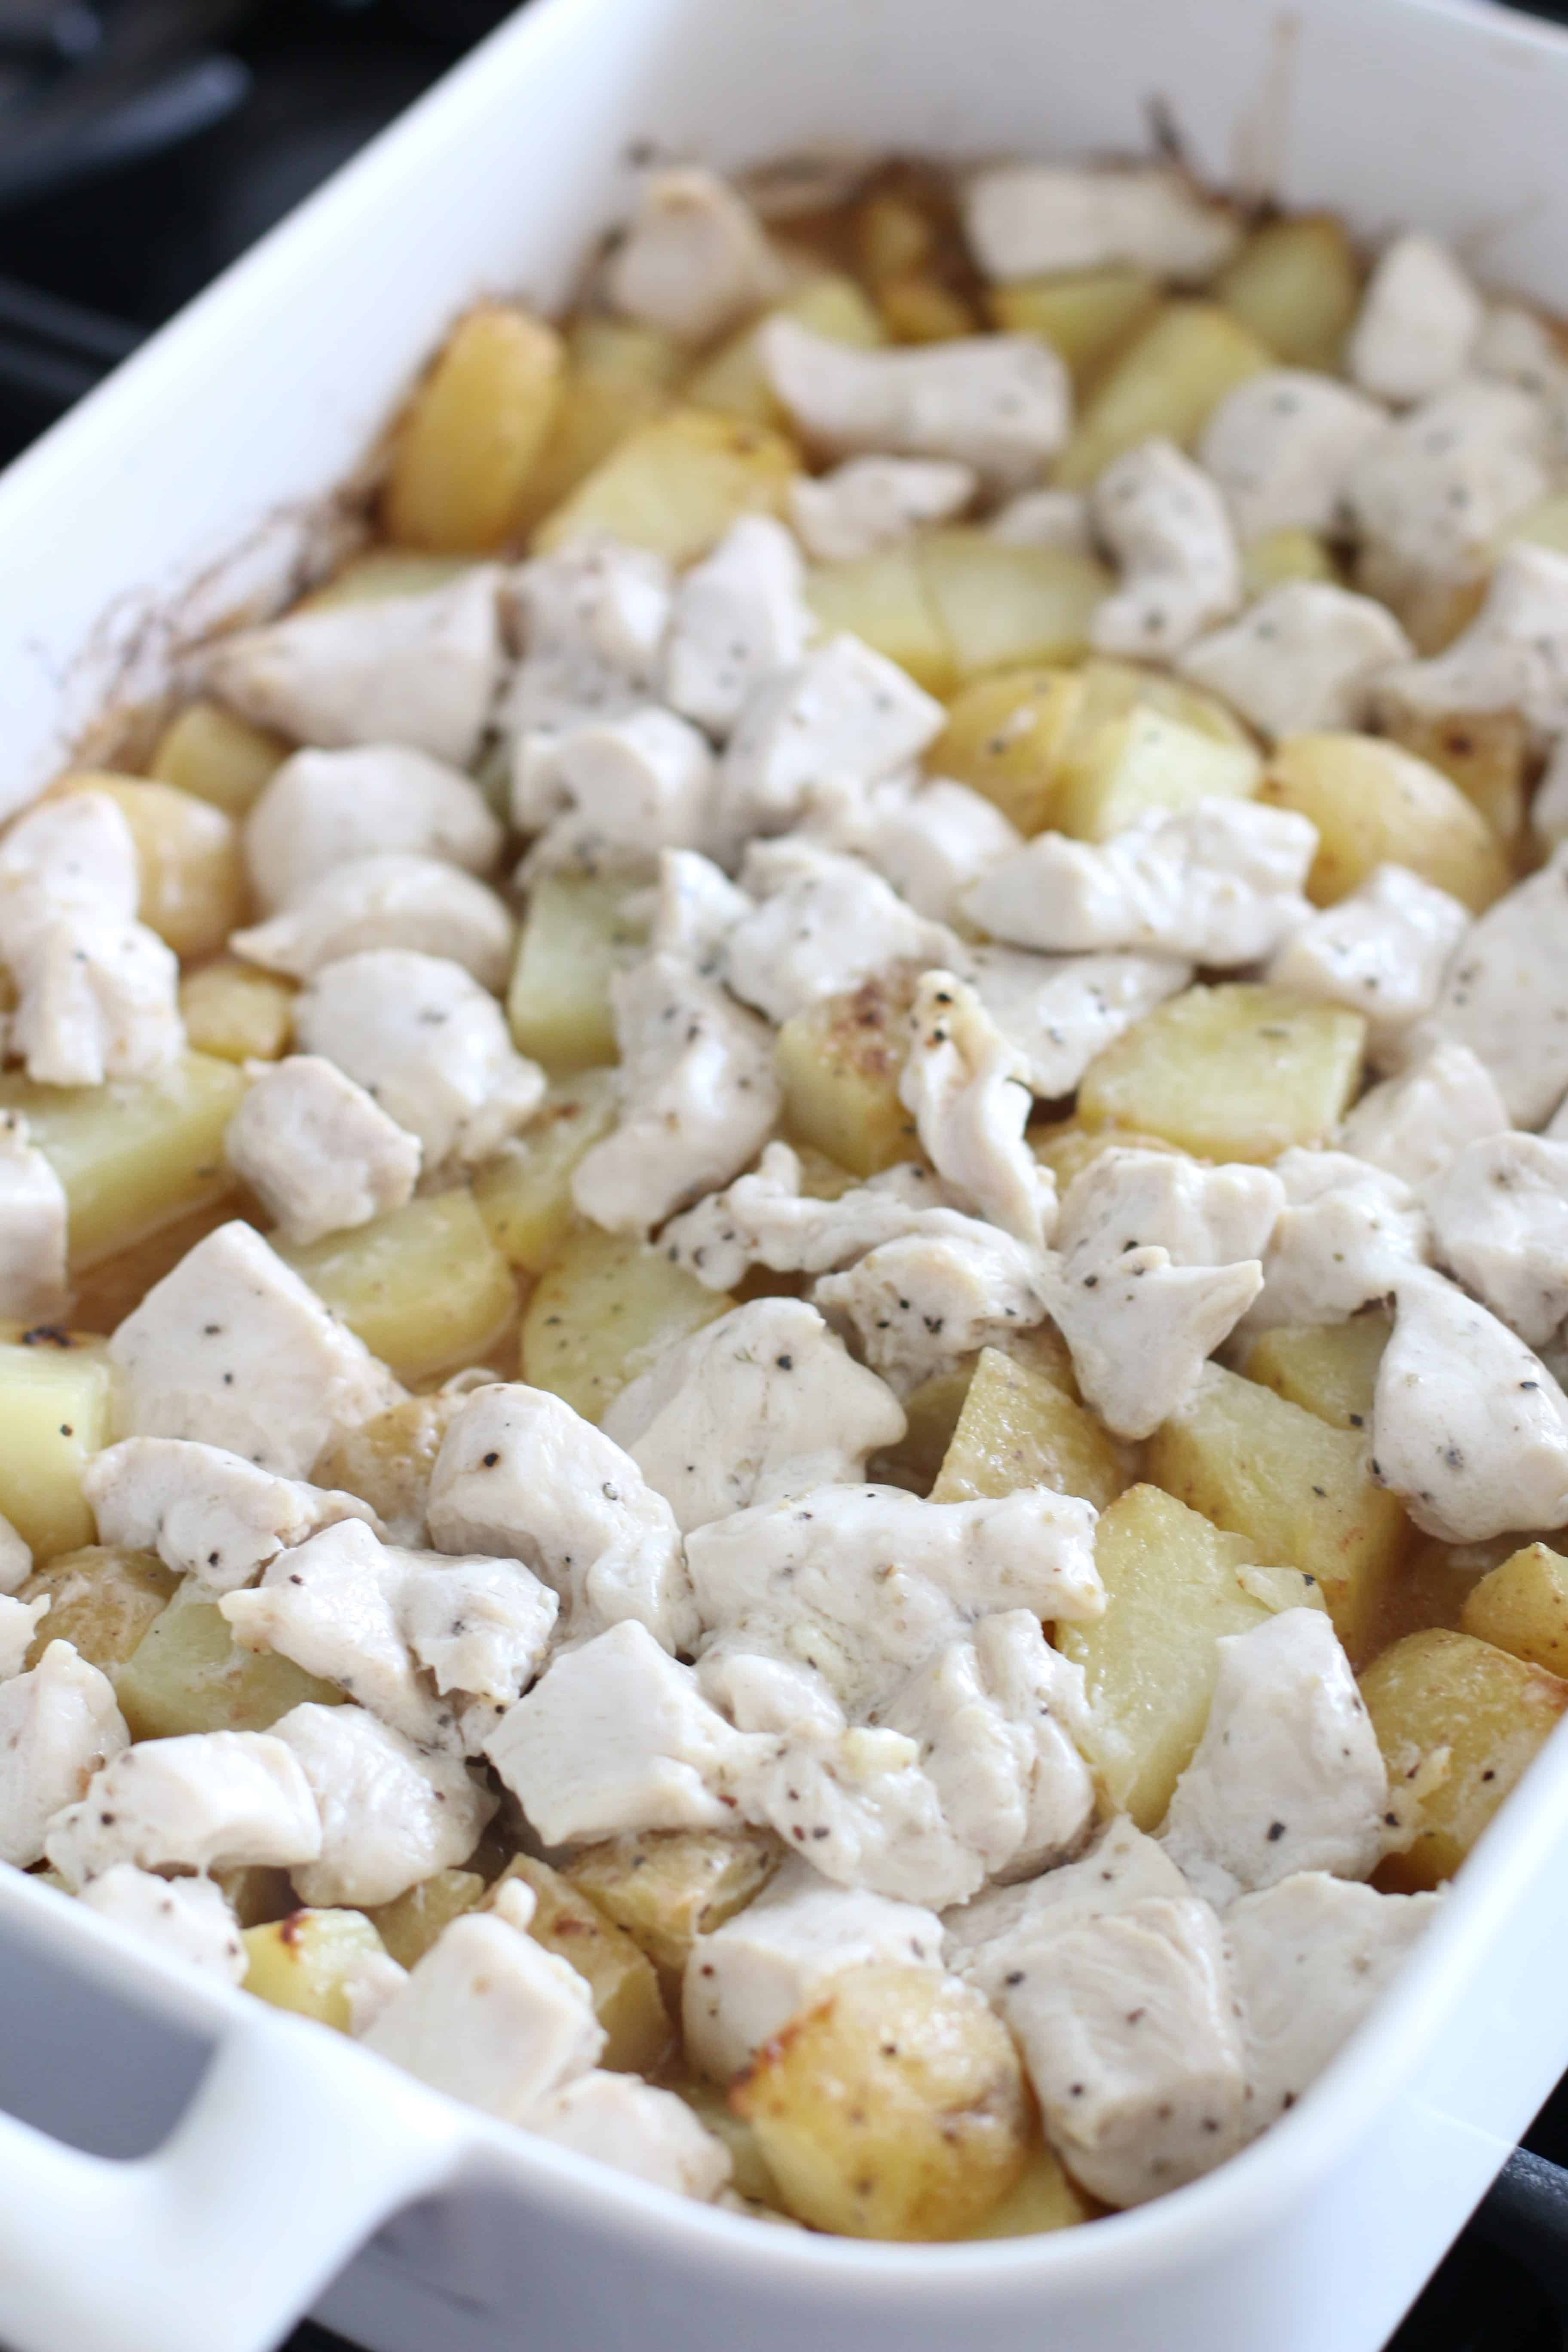 cooked baked chicken and potatoes in a white baking dish.